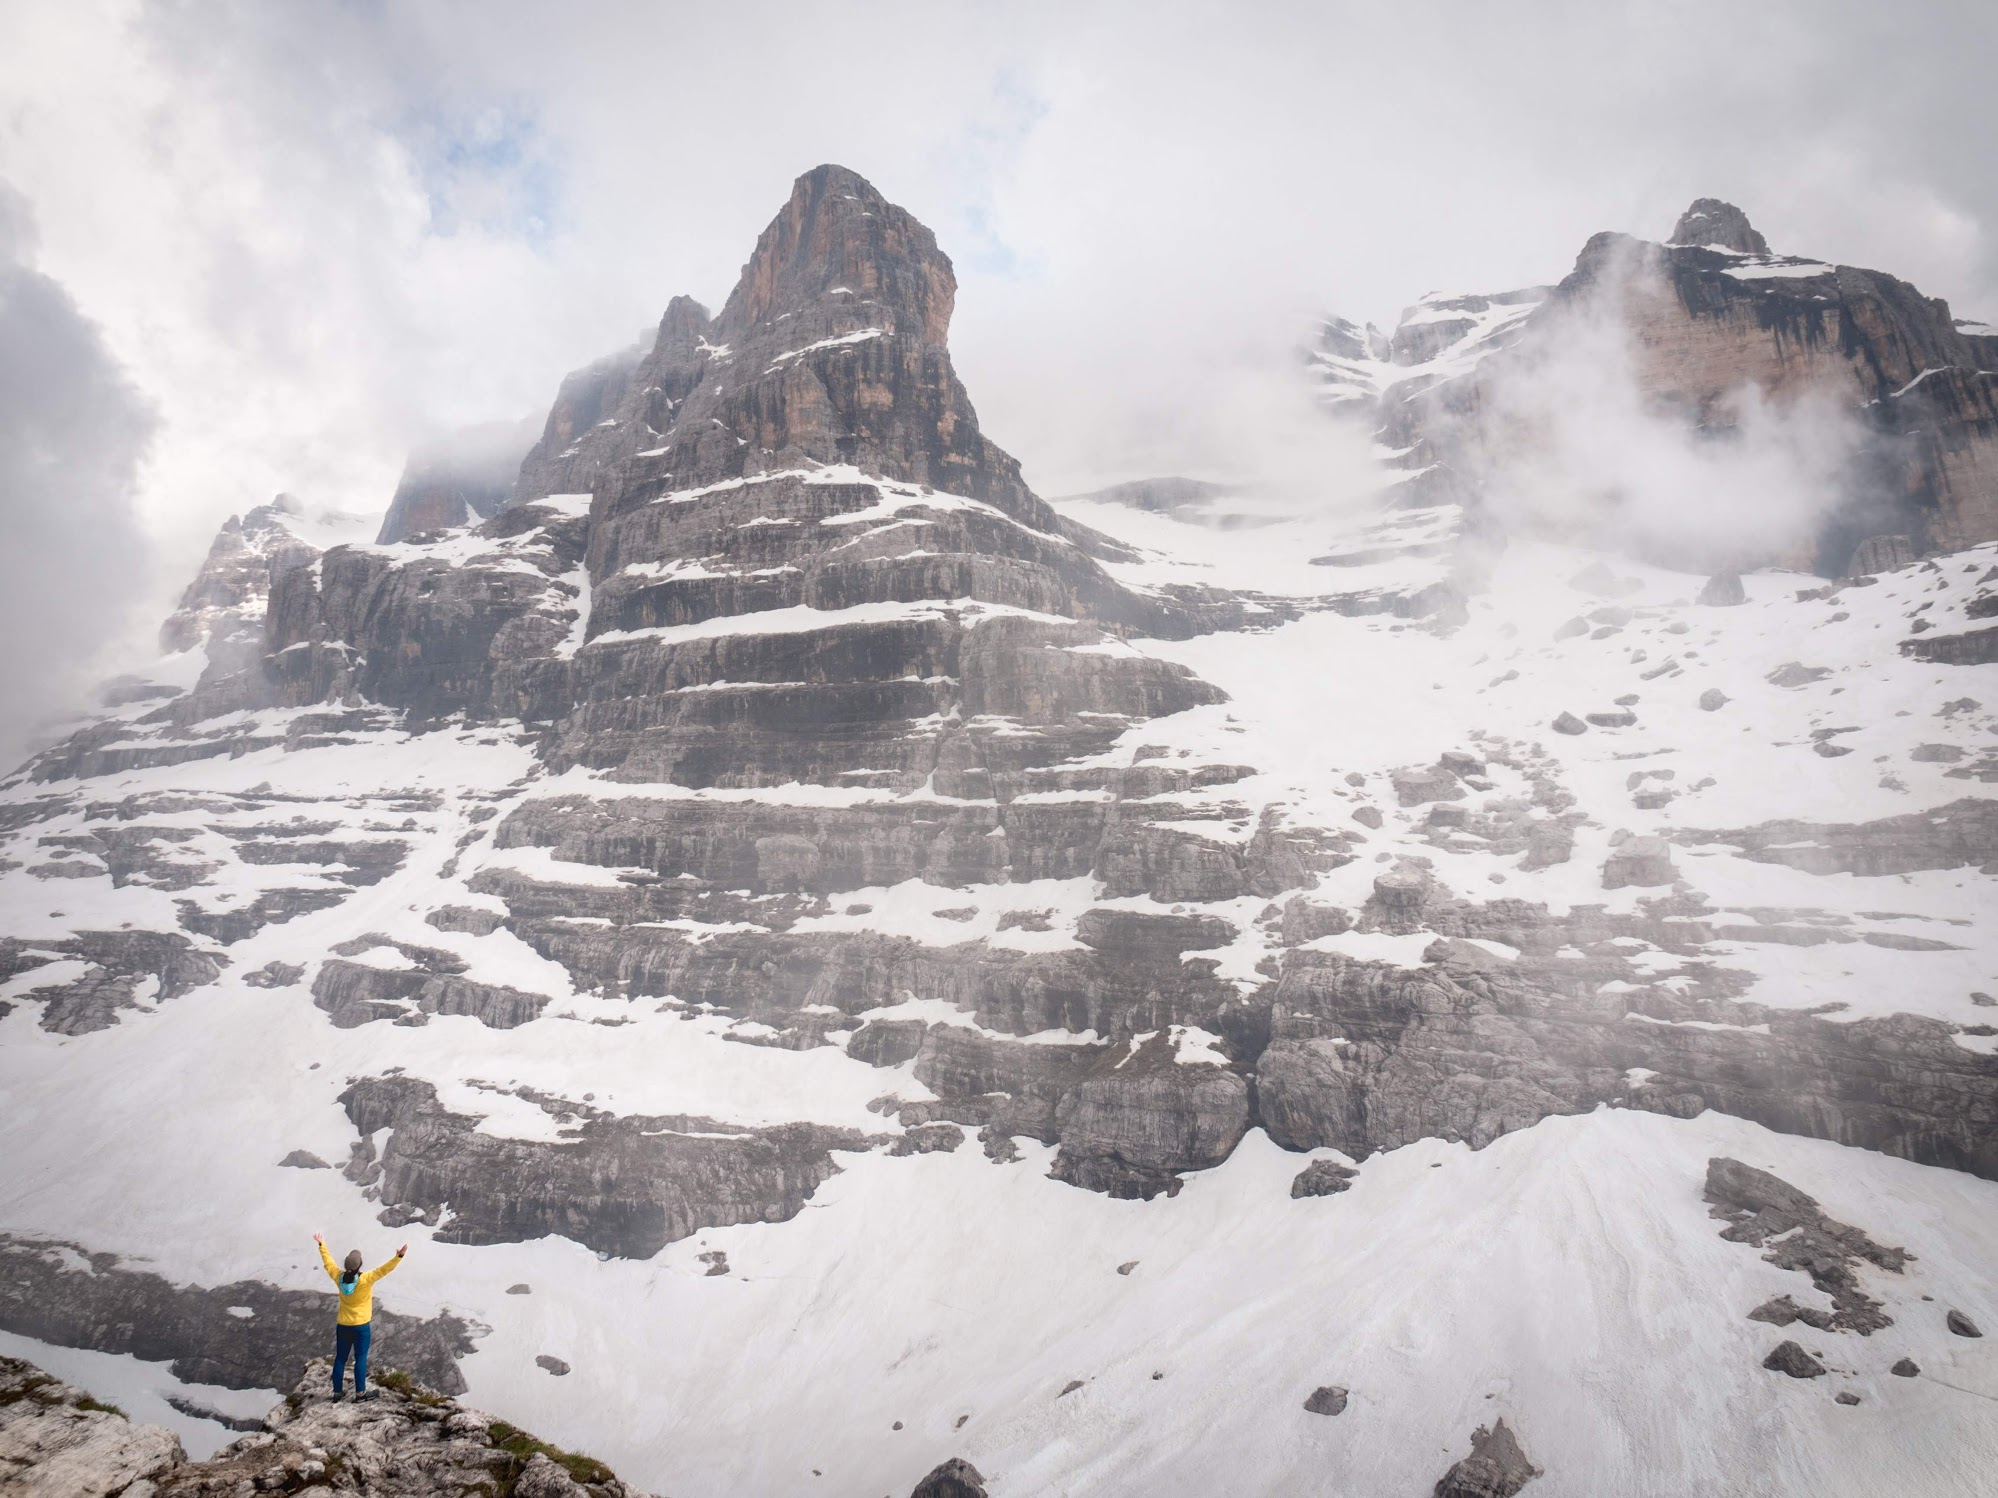 Dolomiti Brenta can be easily visited from Trento or Madonna di Campiglio